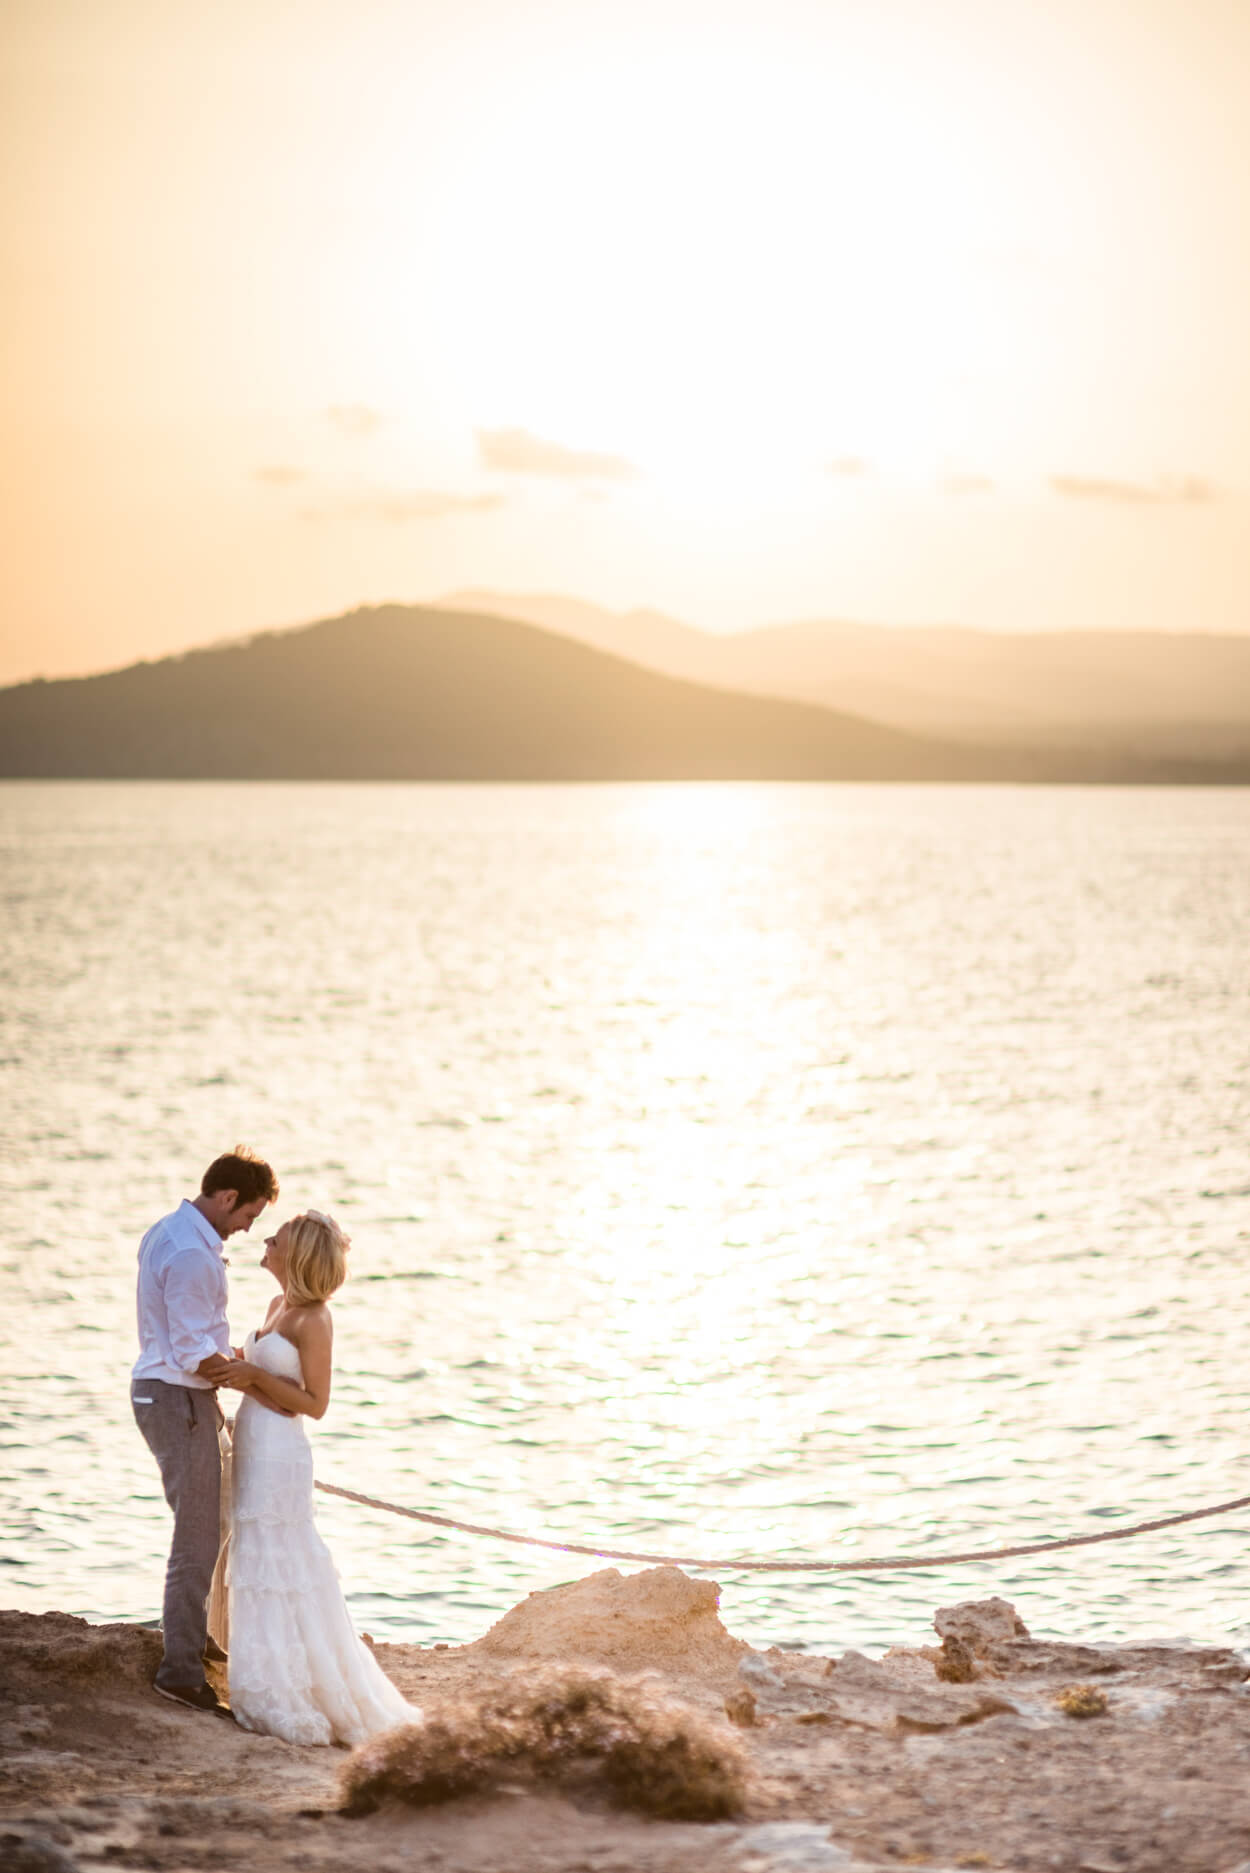 sunset wedding couple portrait beach side wedding venue hill